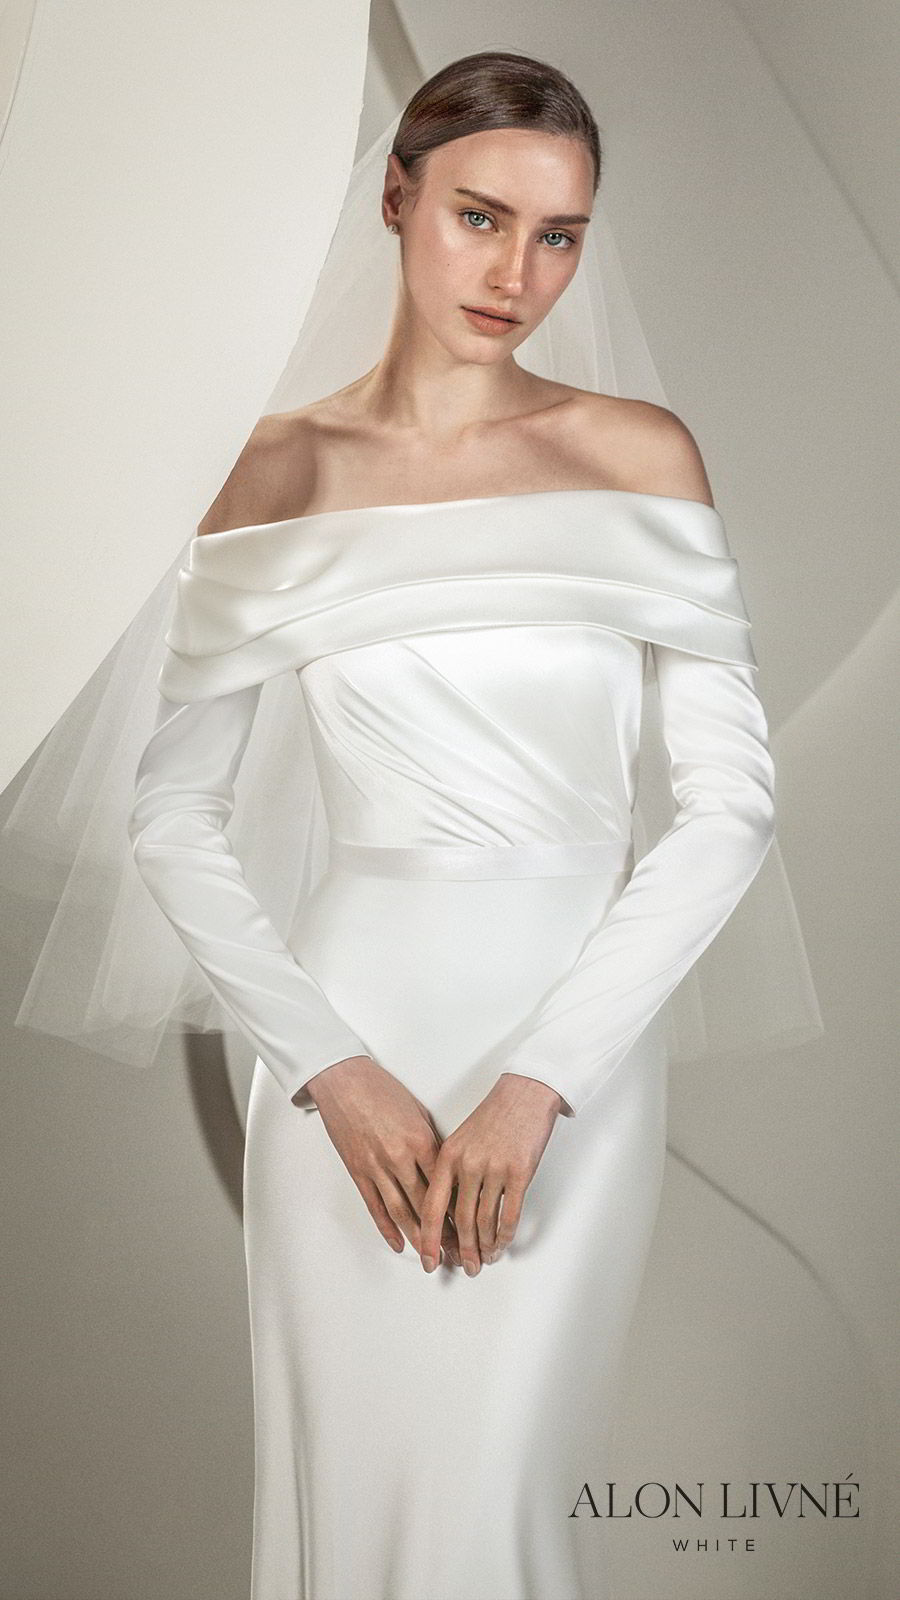 alon livne white spring 2020 bridal off shoulder foldover neckline long sleeves simple sheath column wedding dress (juliet) elegant chic minimalist mv